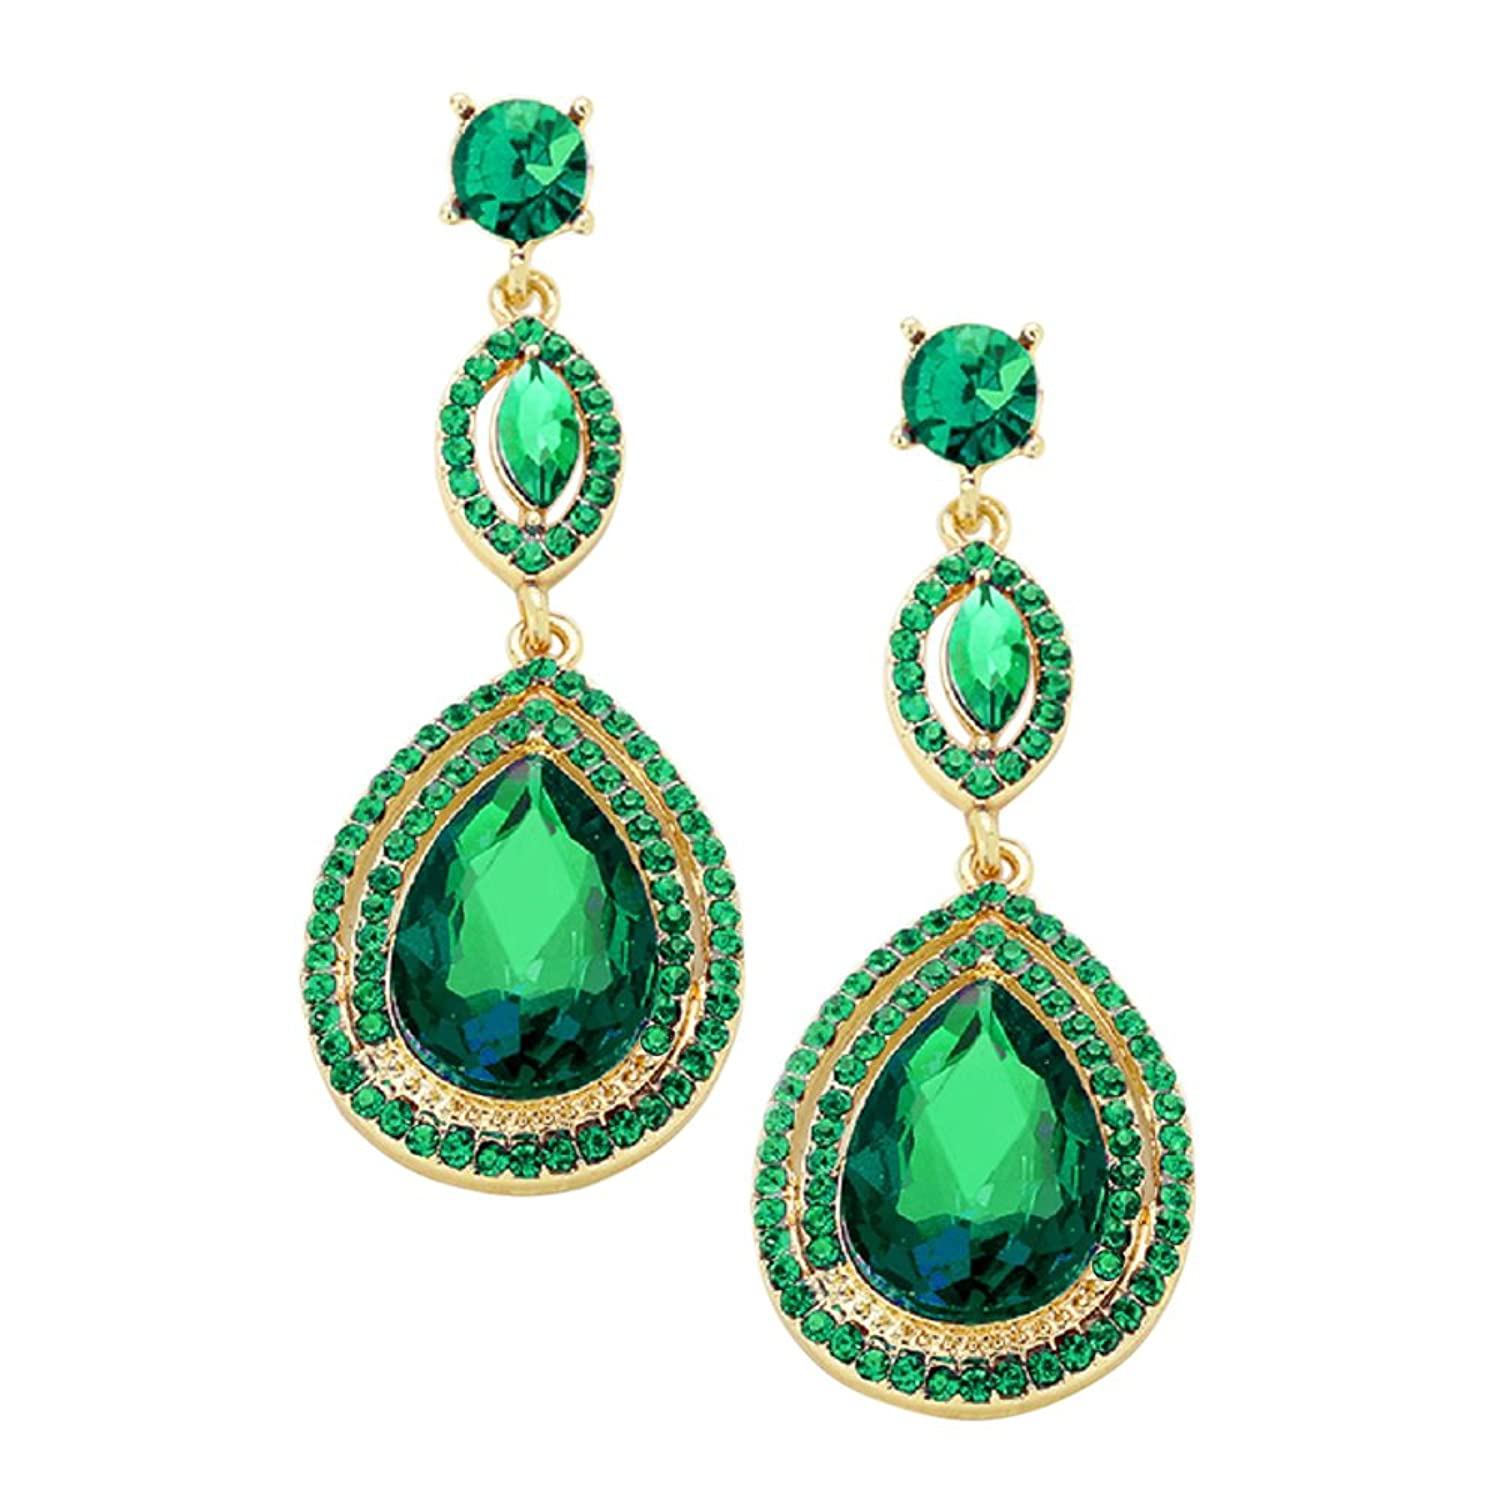 earrings free product abalone over handmade overstock harmony mosaic orders green teardrop philippines jewelry on watches shipping